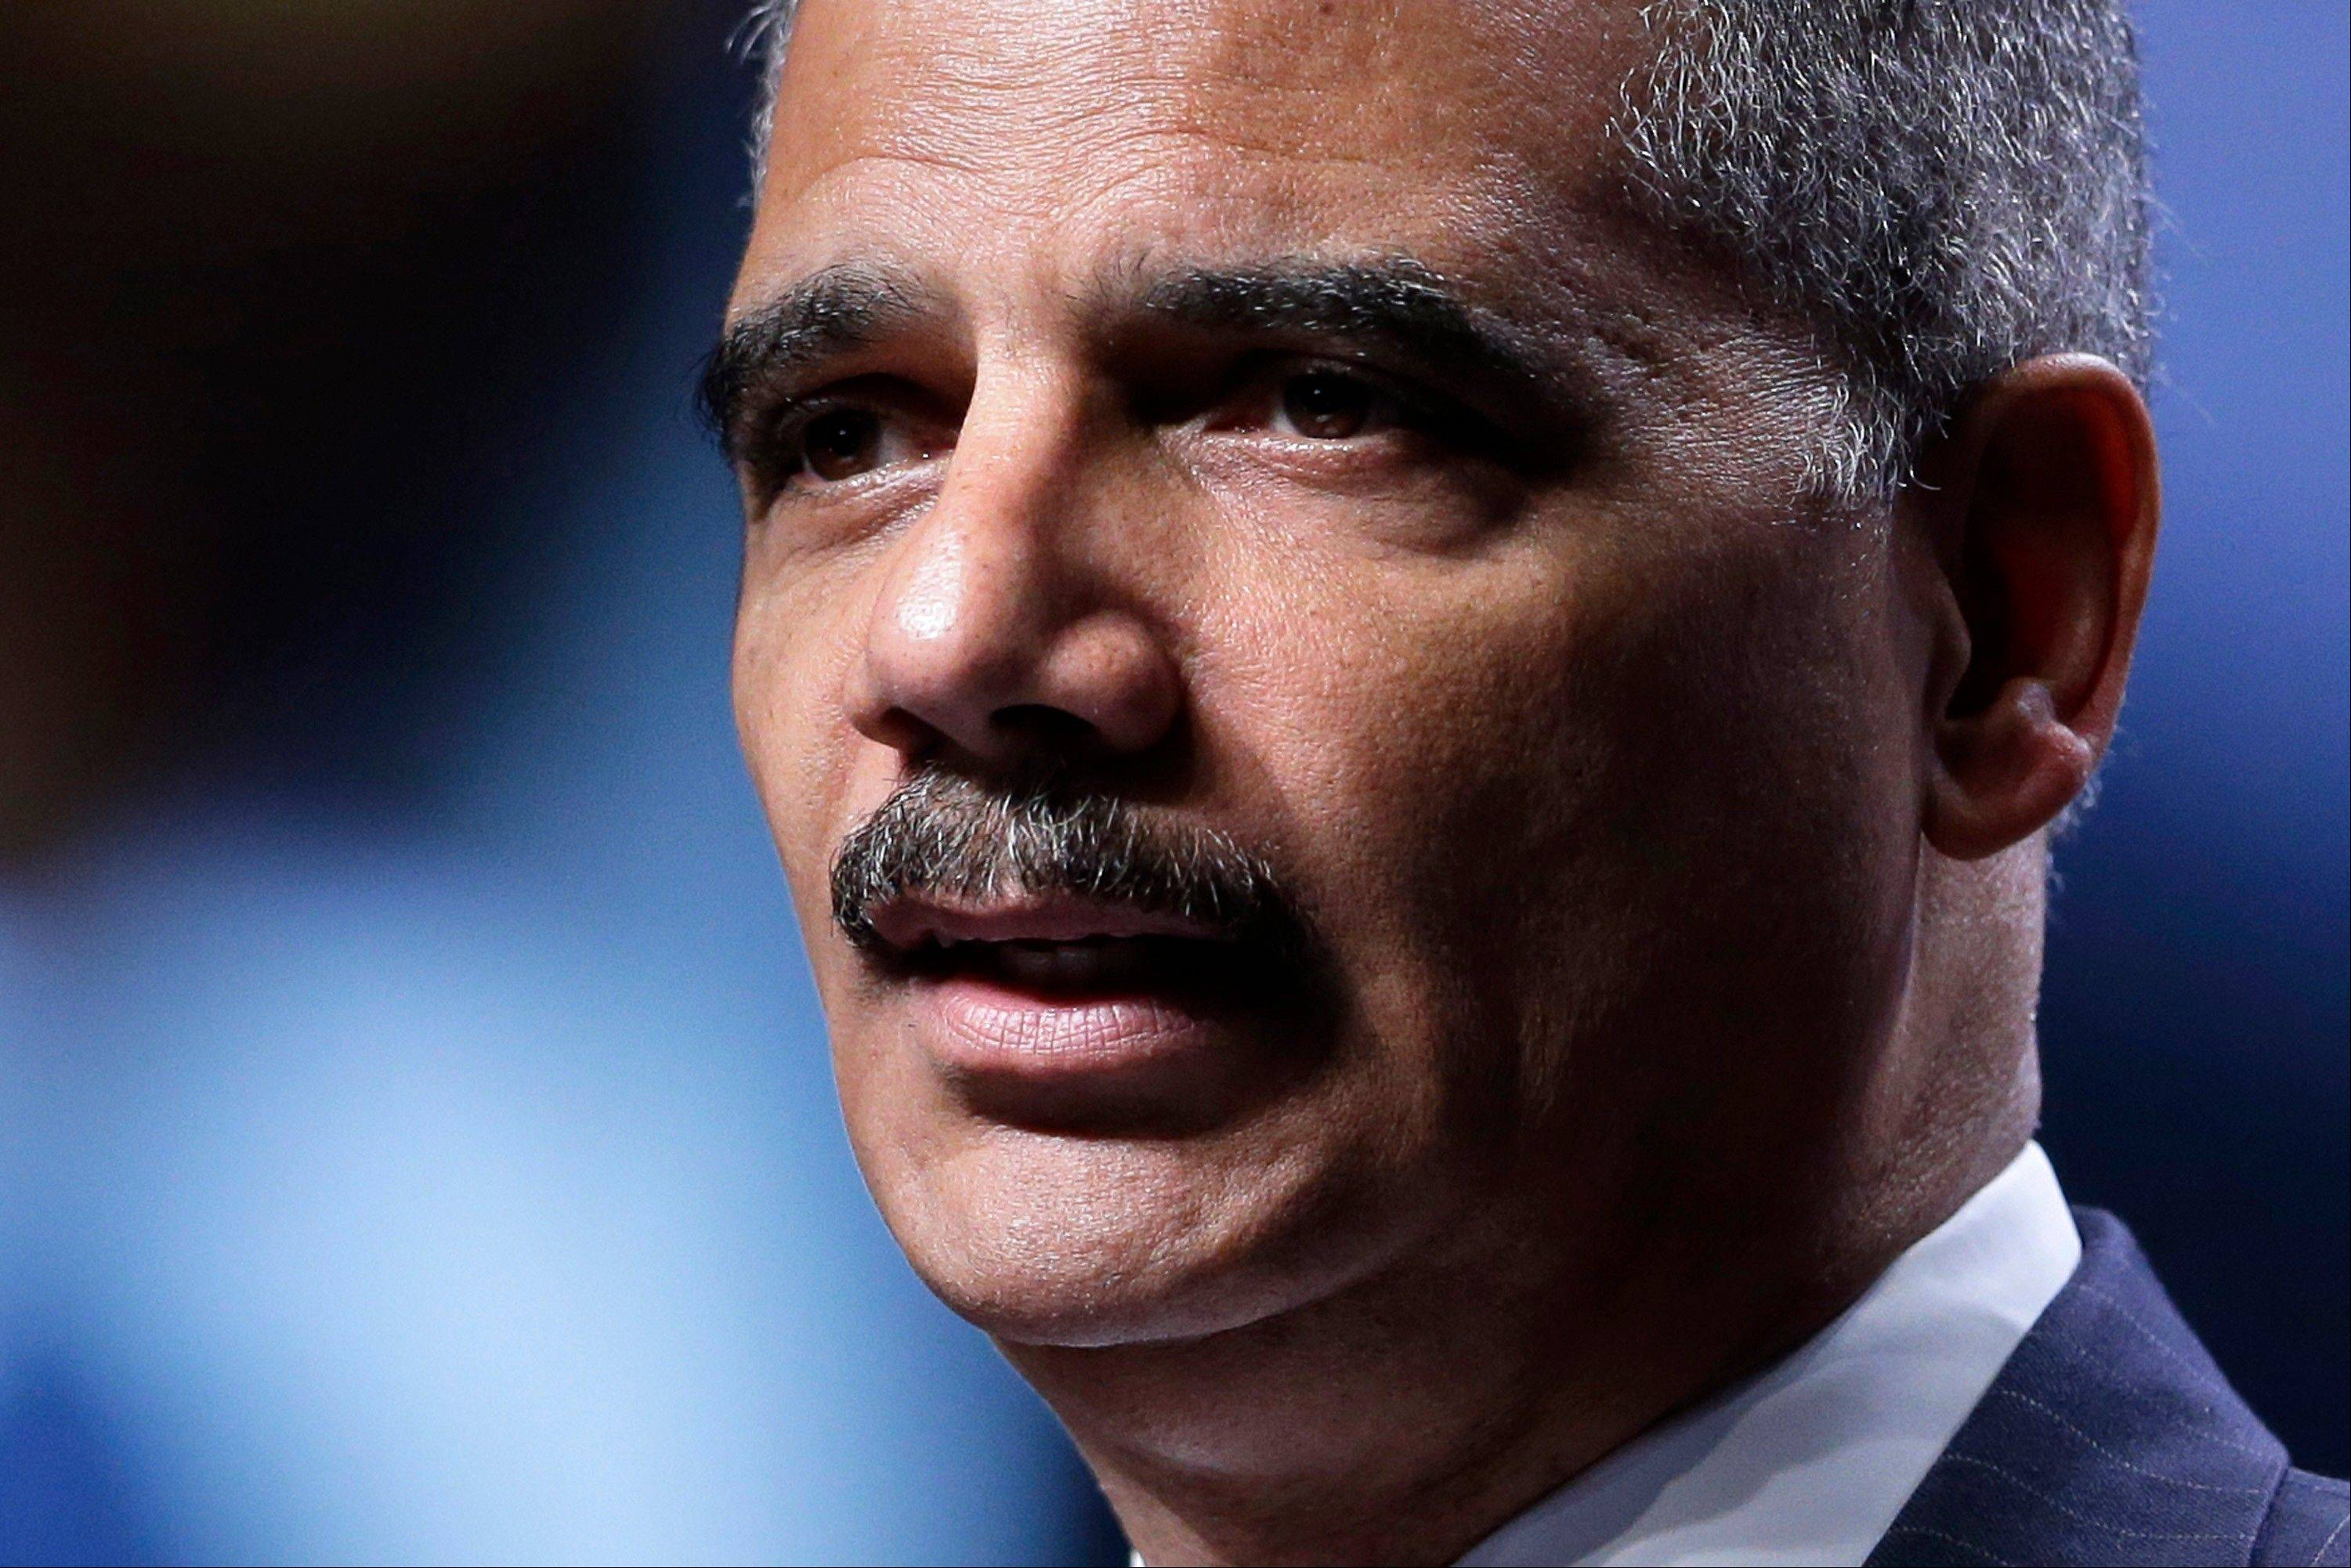 Attorney General Eric Holder says the U.S. won't seek death penalty for Edward Snowden.